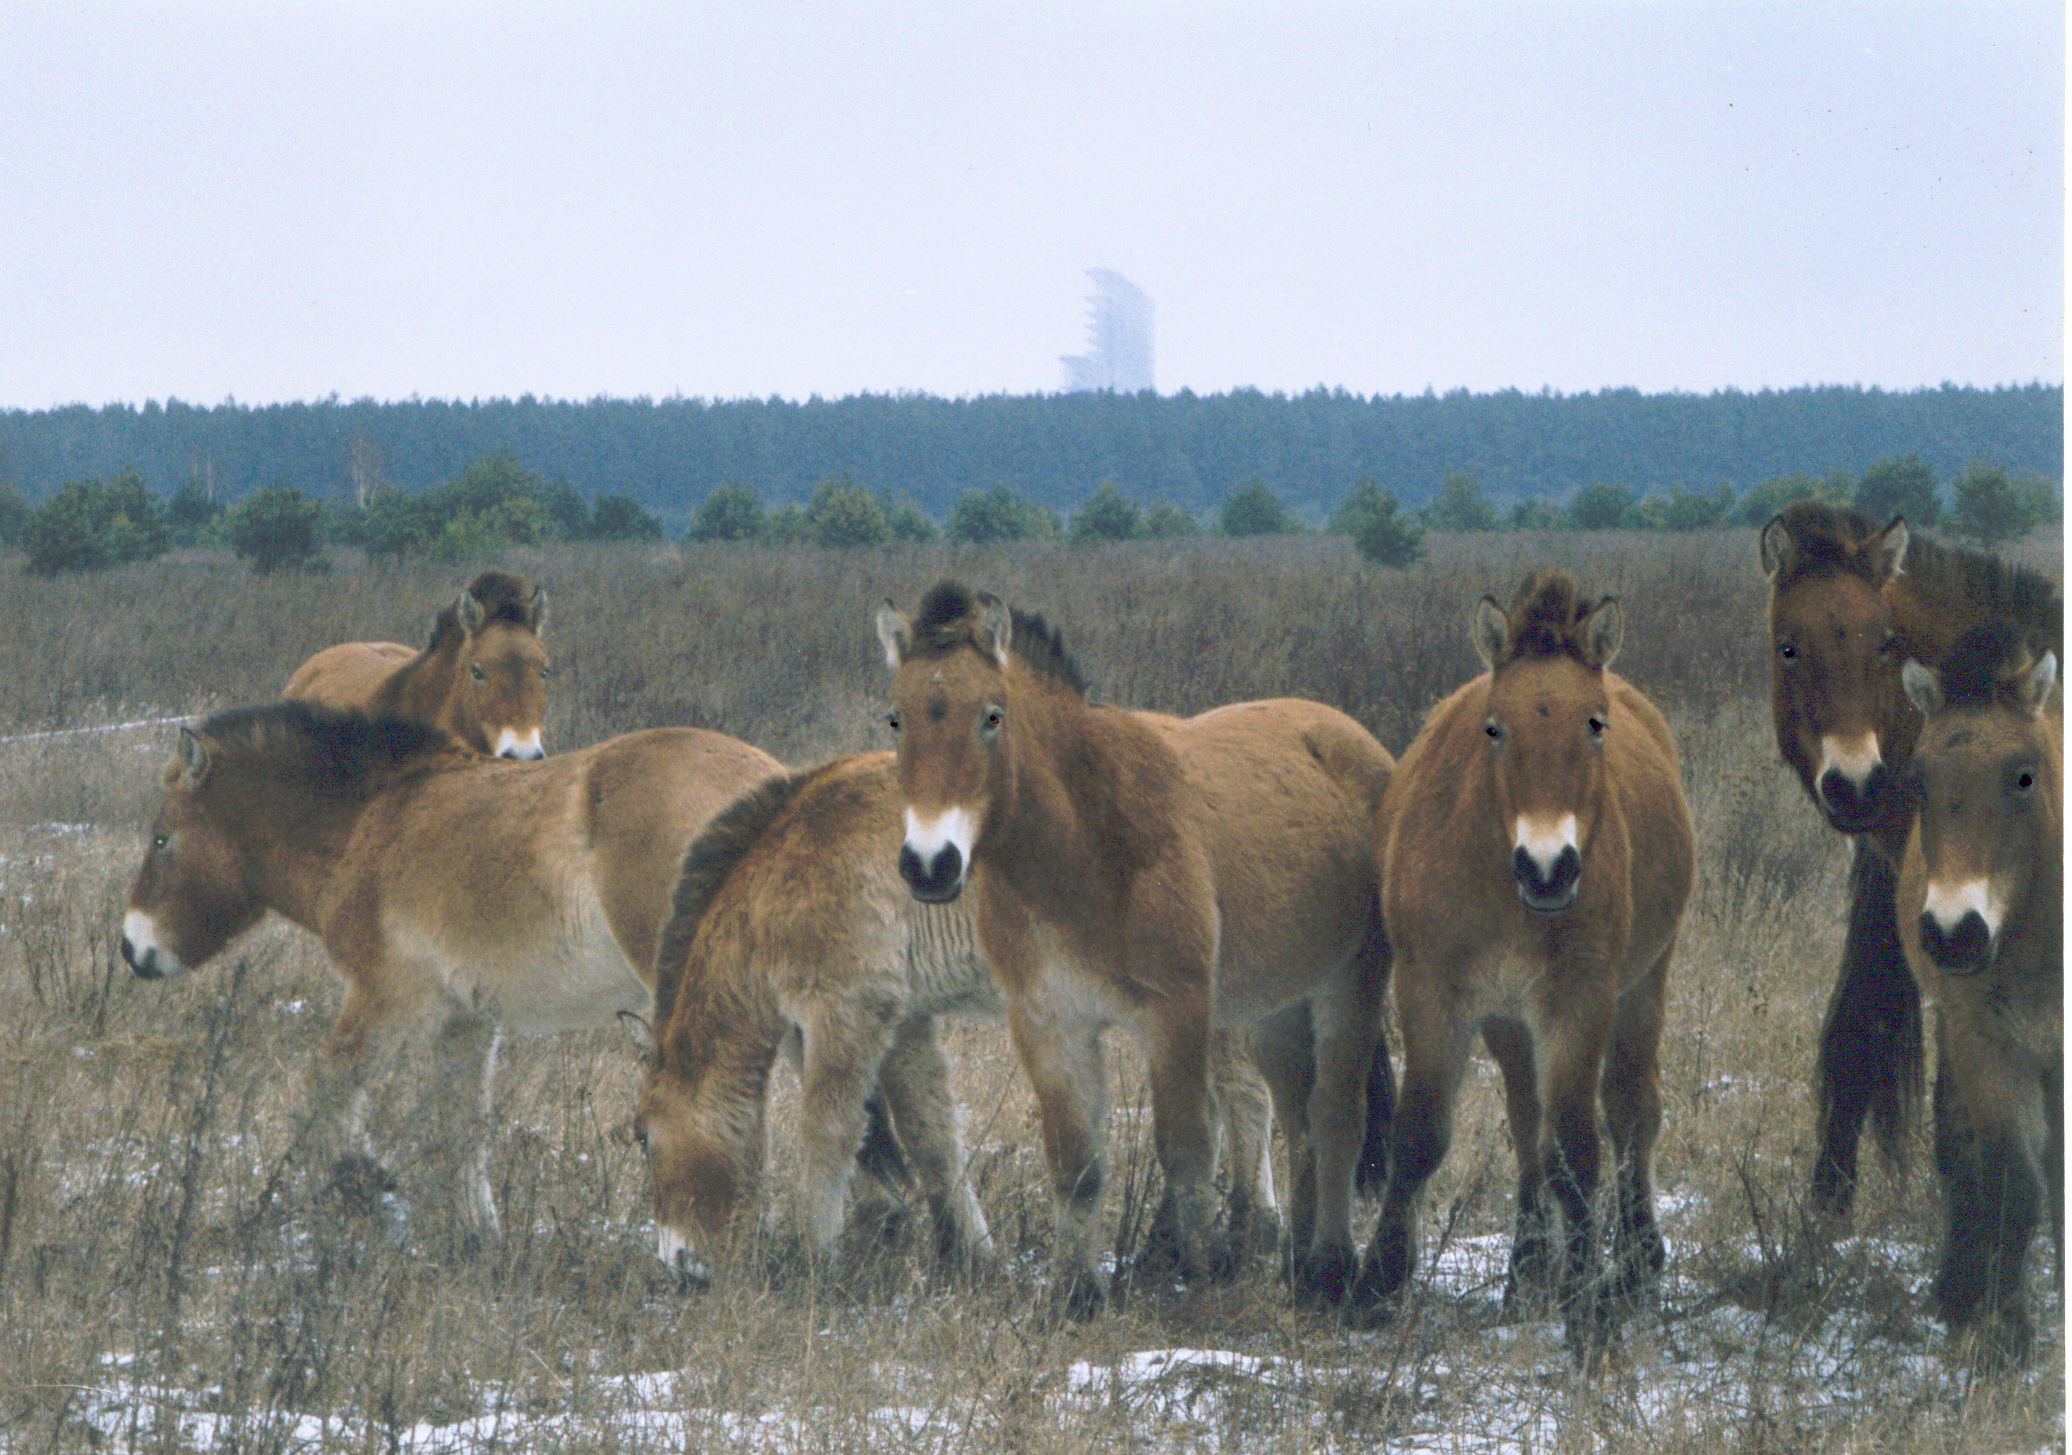 Przewalski's horses in the Exclusion Zone, with an abandoned power plant building in the background. Image by    Xopc   .